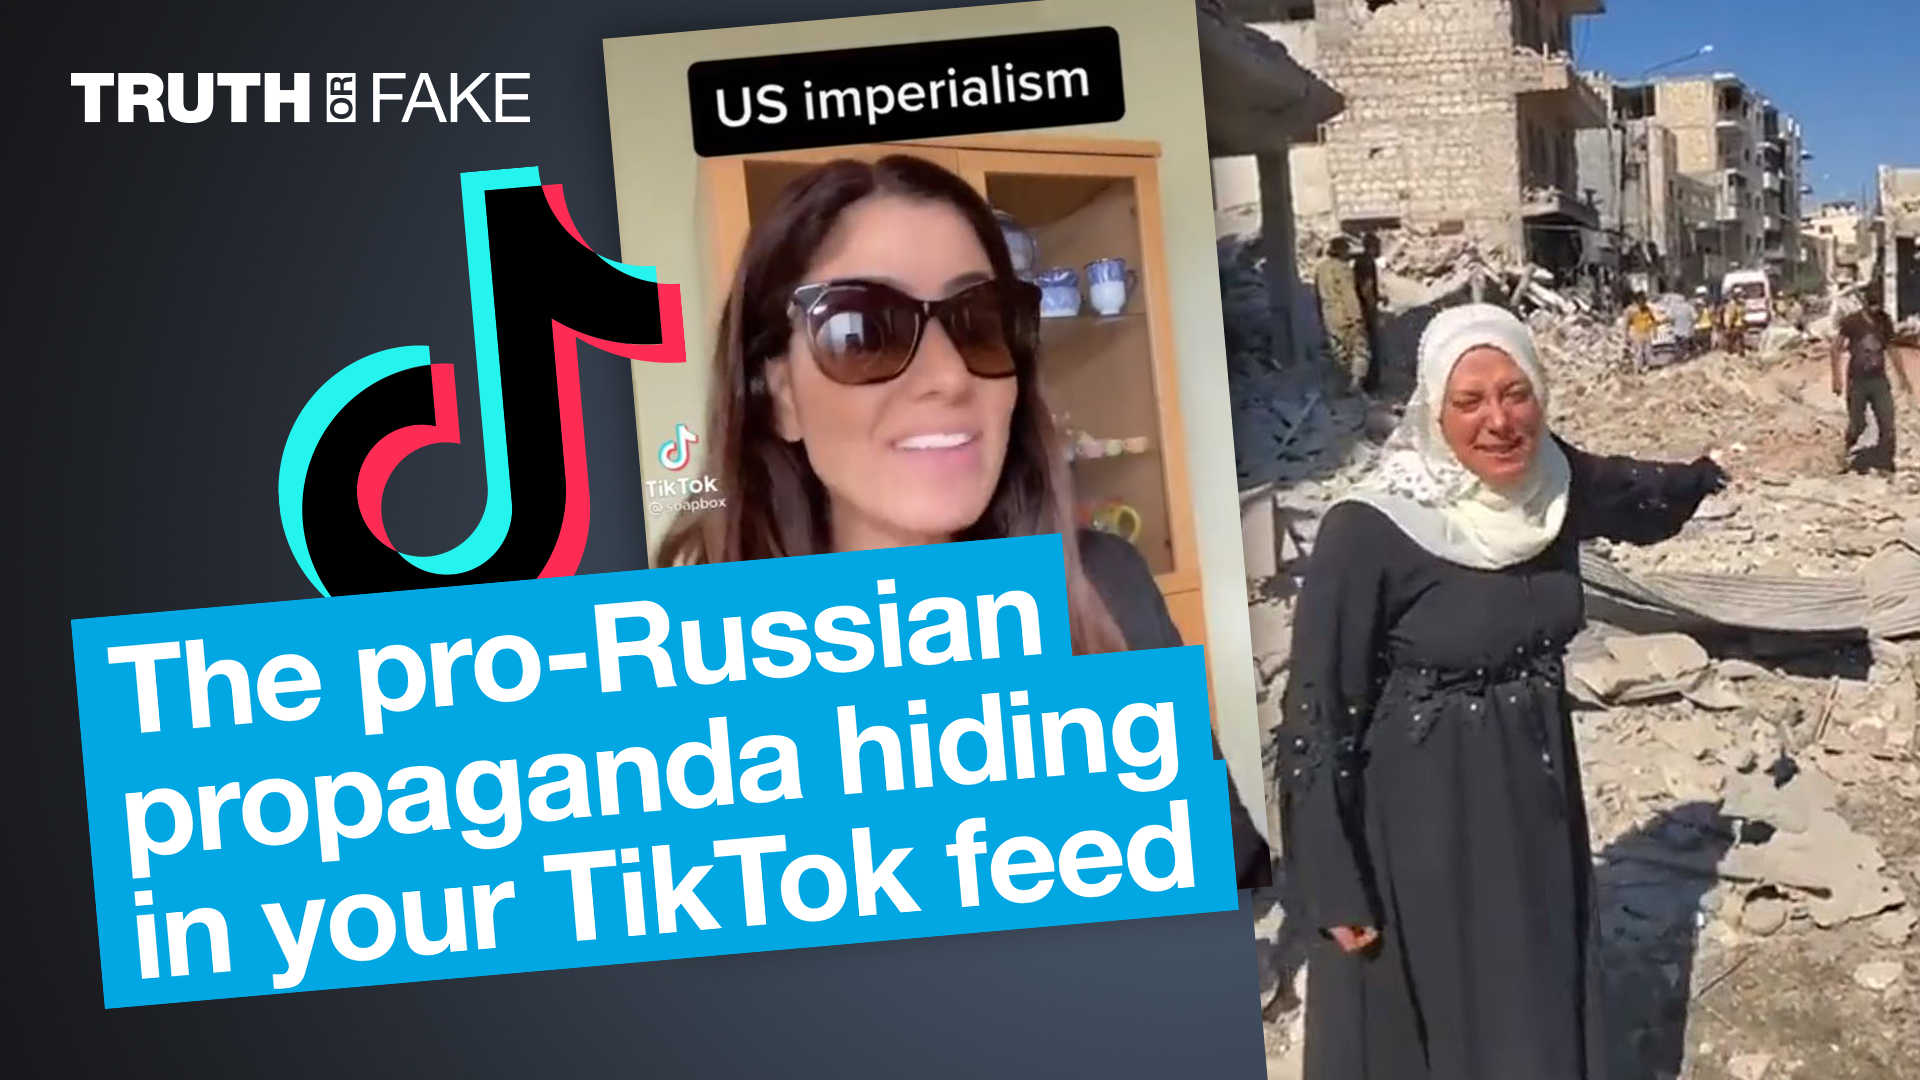 Watch out for misleading or manipulative videos hiding out in your TikTok feed.